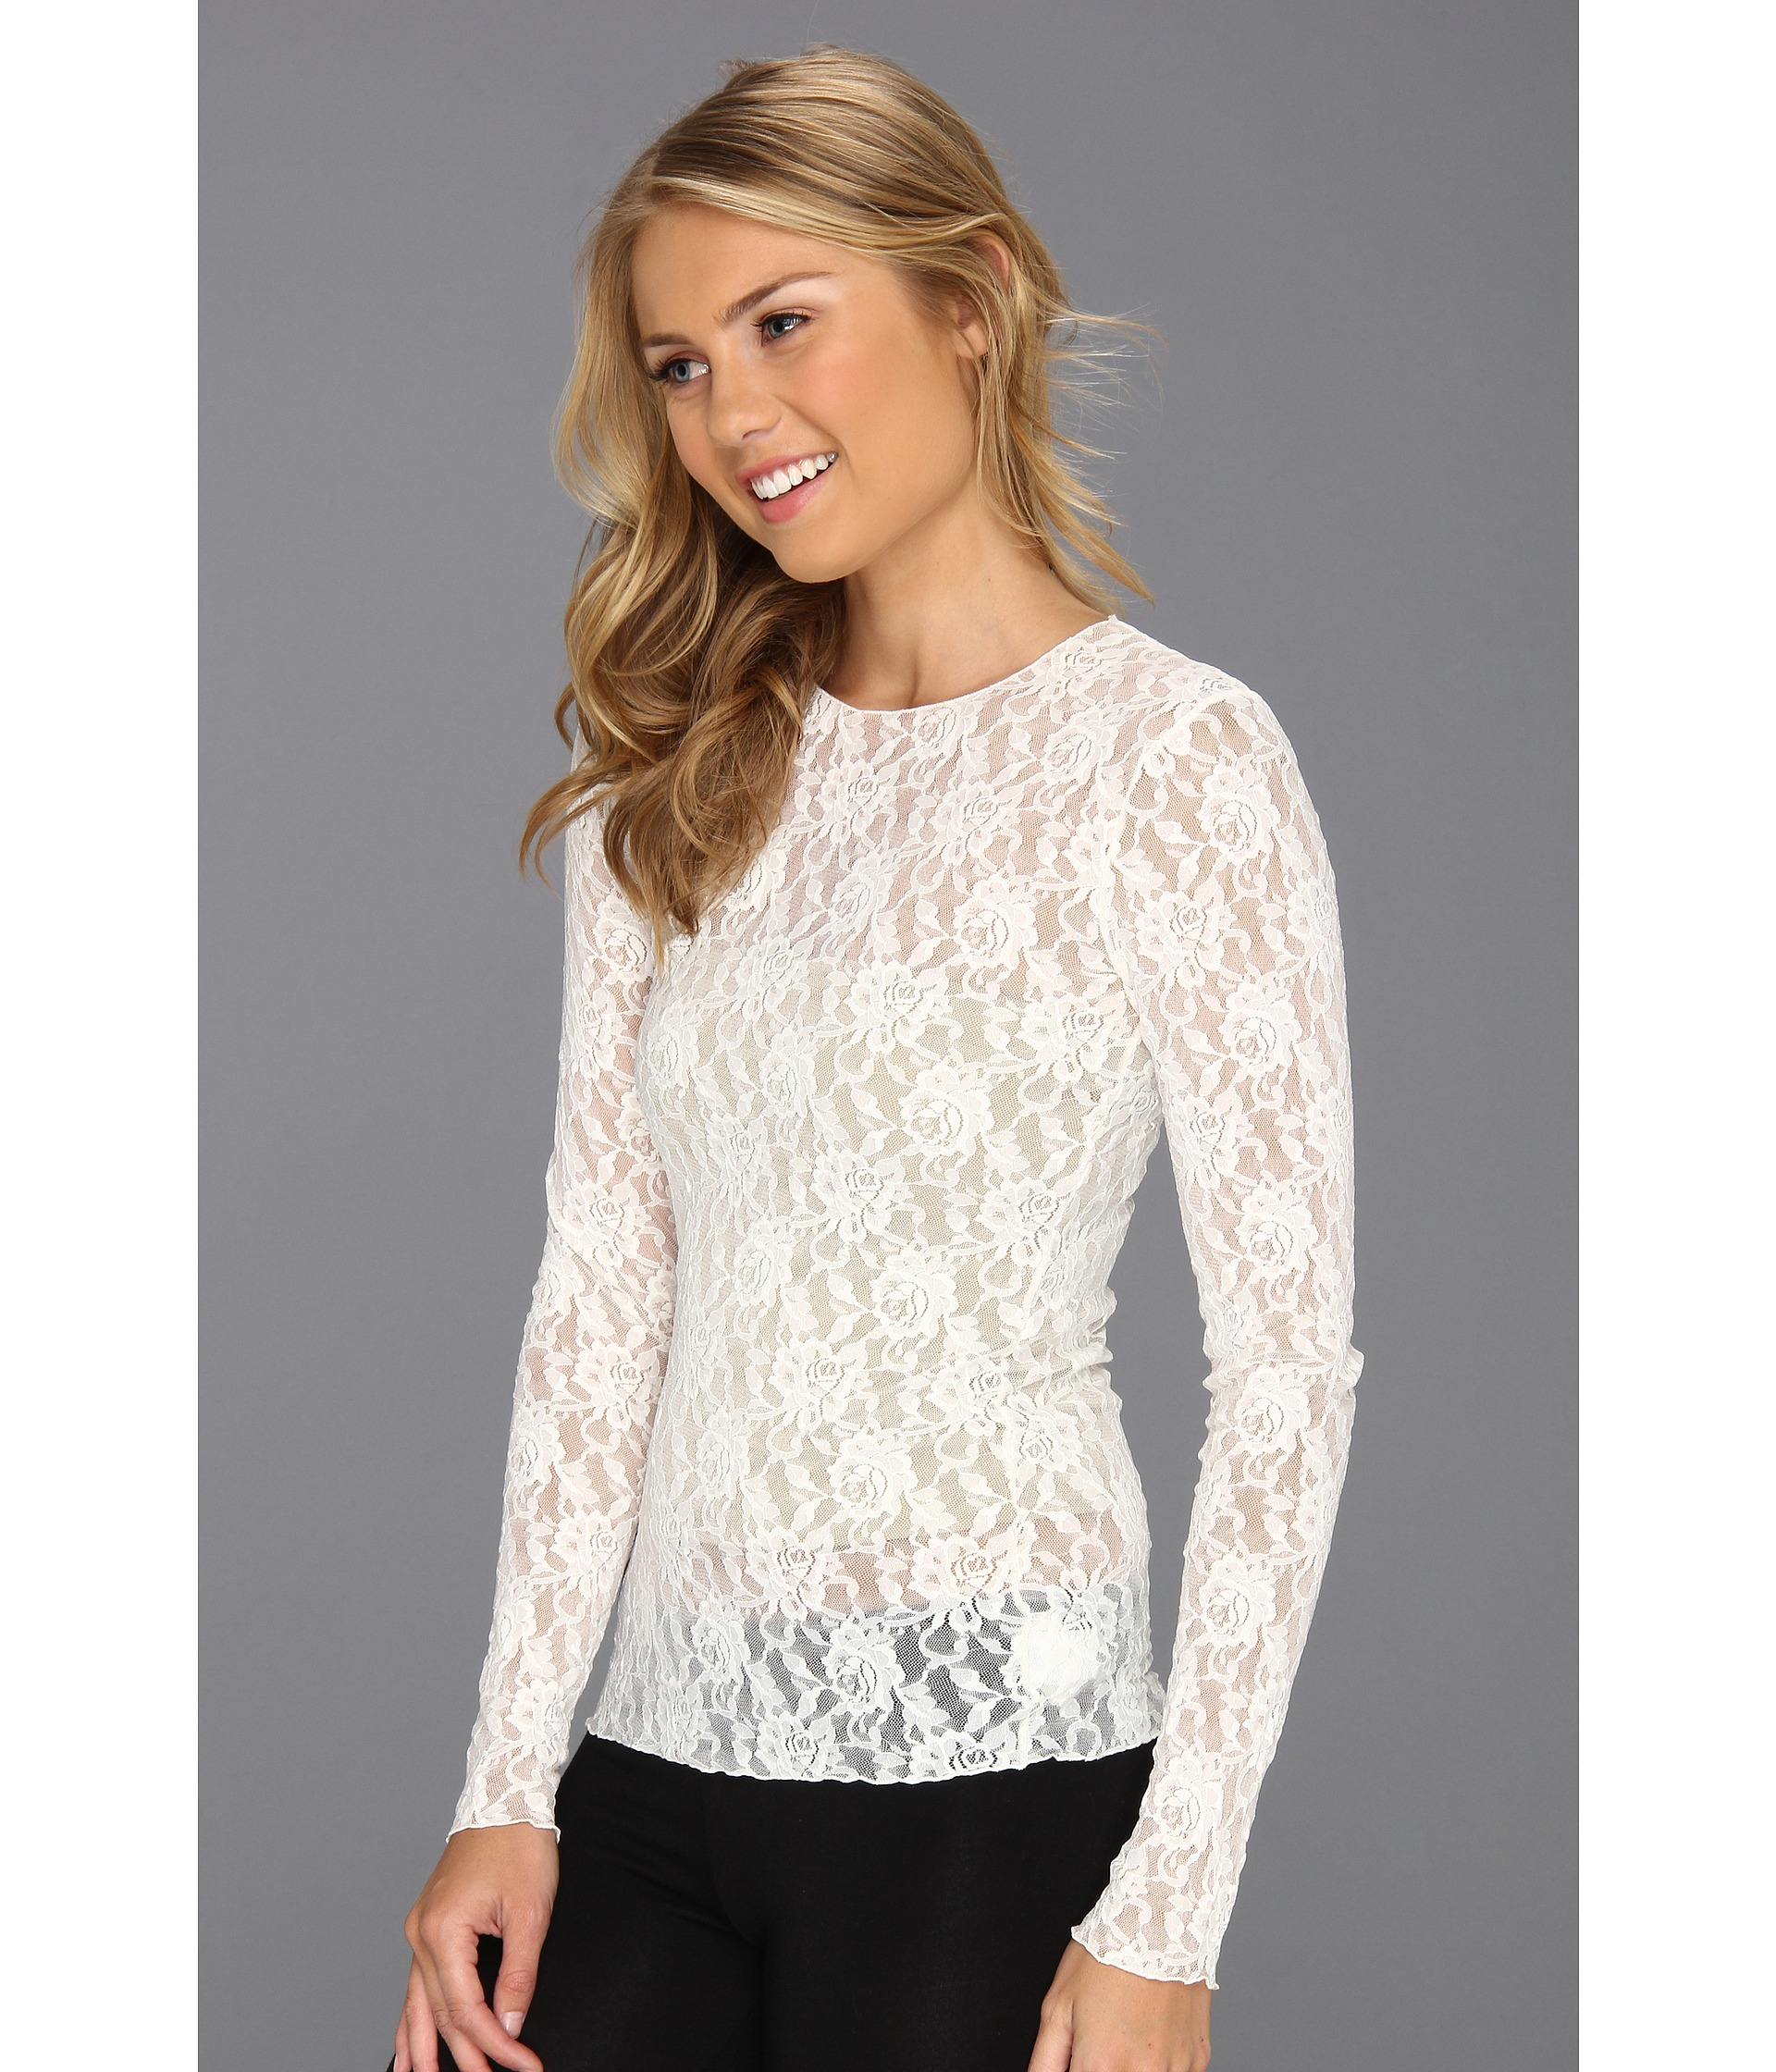 Hanky Panky Signature Lace Unlined Long Sleeve Top at Zappos.com